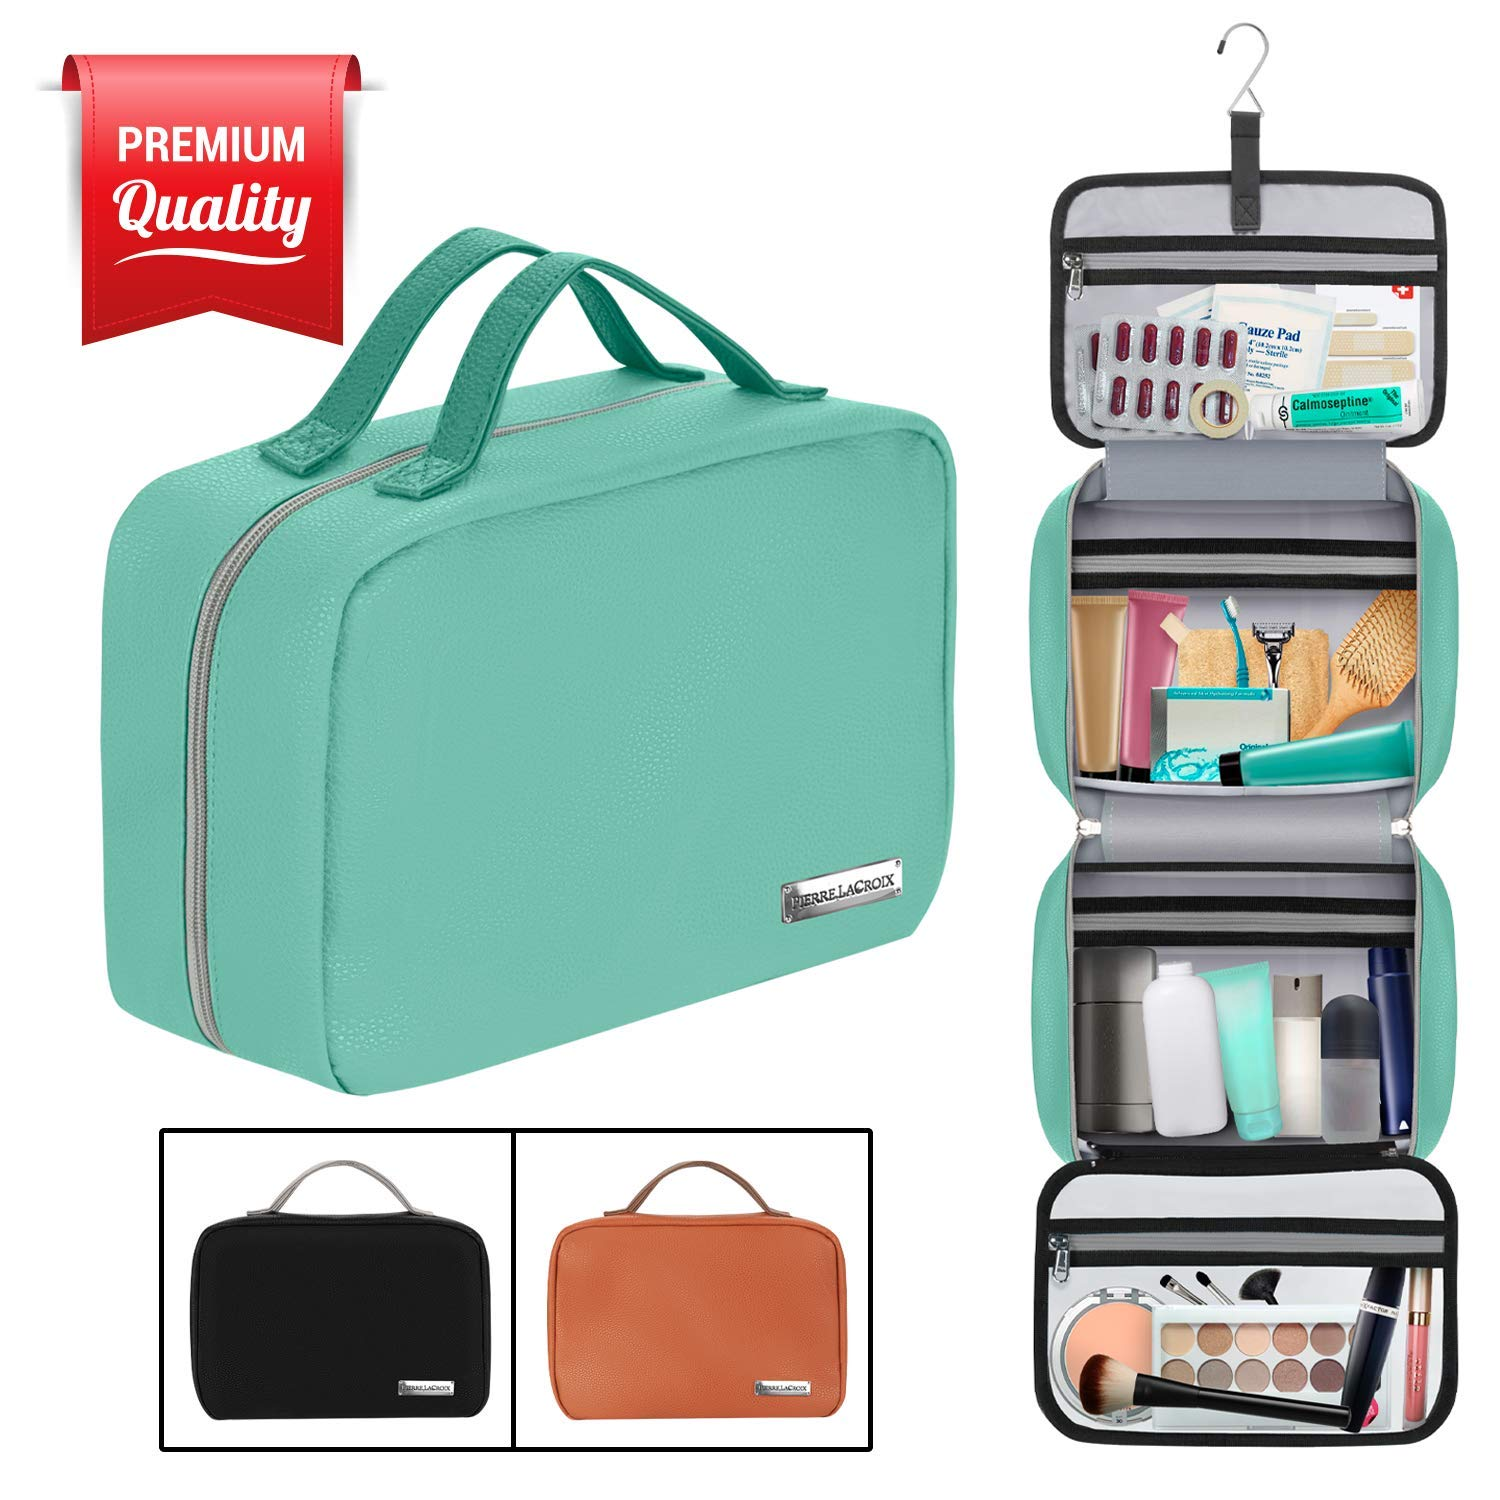 Hanging Travel Toiletry Bag for Women and Men 100 Leak Proof Doubles as a Cosmetic Makeup Bag Large 34 x11 Clear Pockets Detachable Compartment Cruelty-Free Leather Tiffany Blue